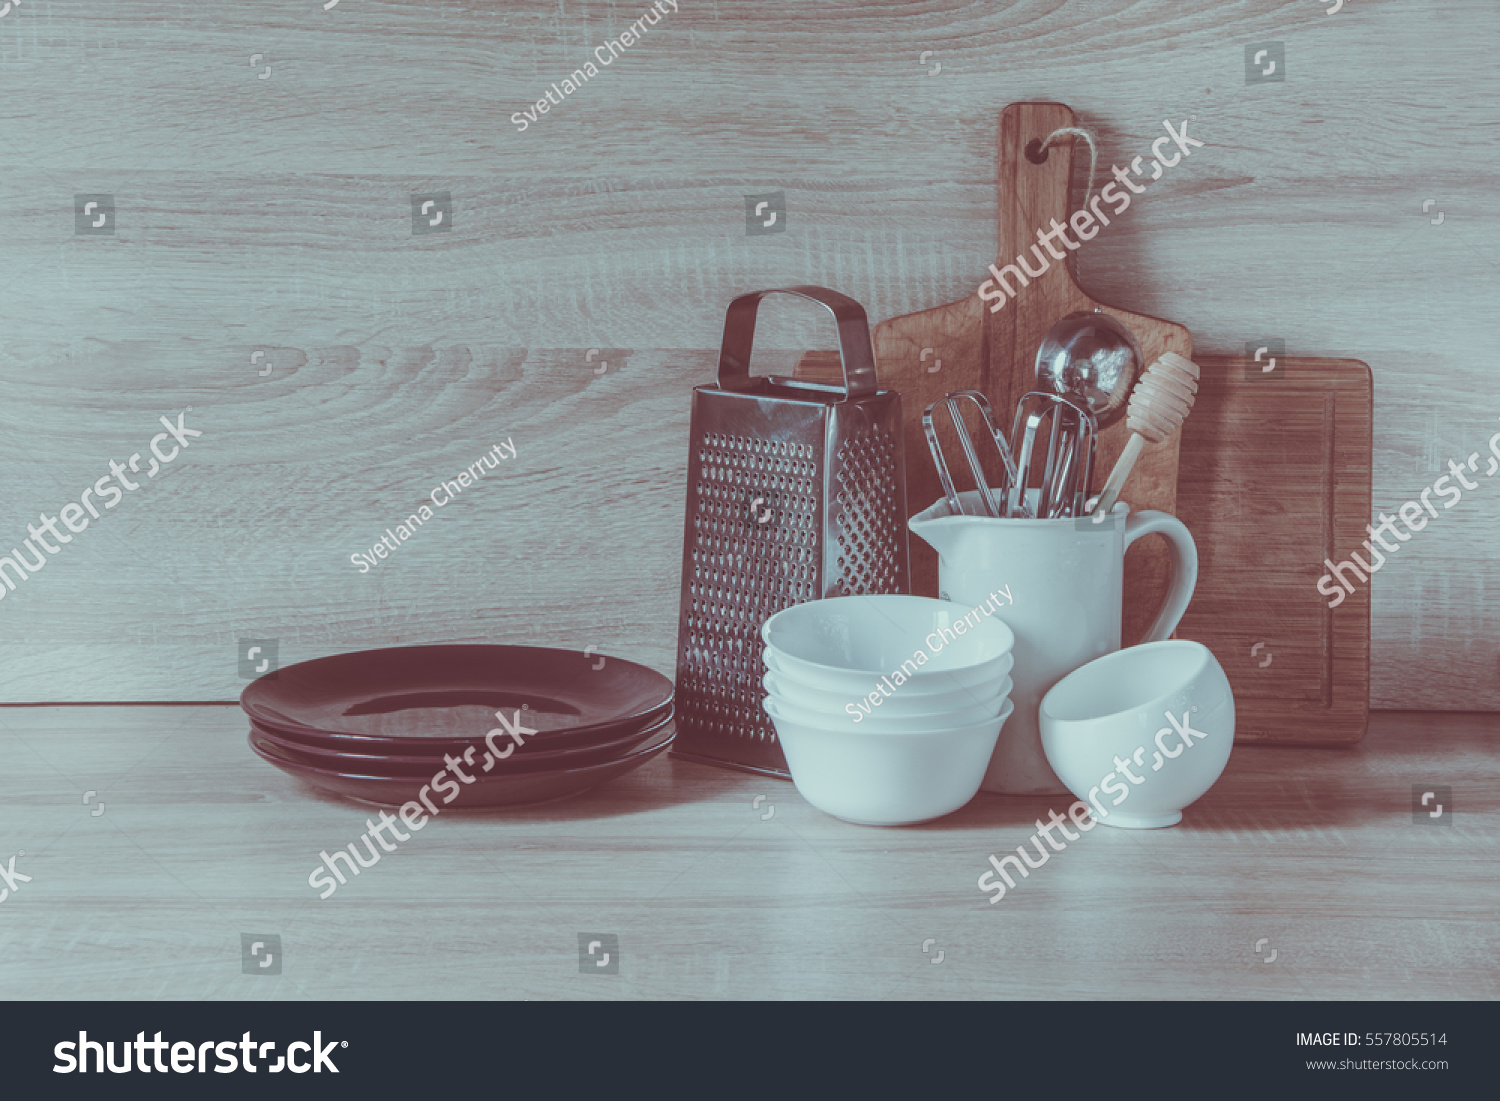 Crockery, tableware, utensils and other different stuff on wooden ...